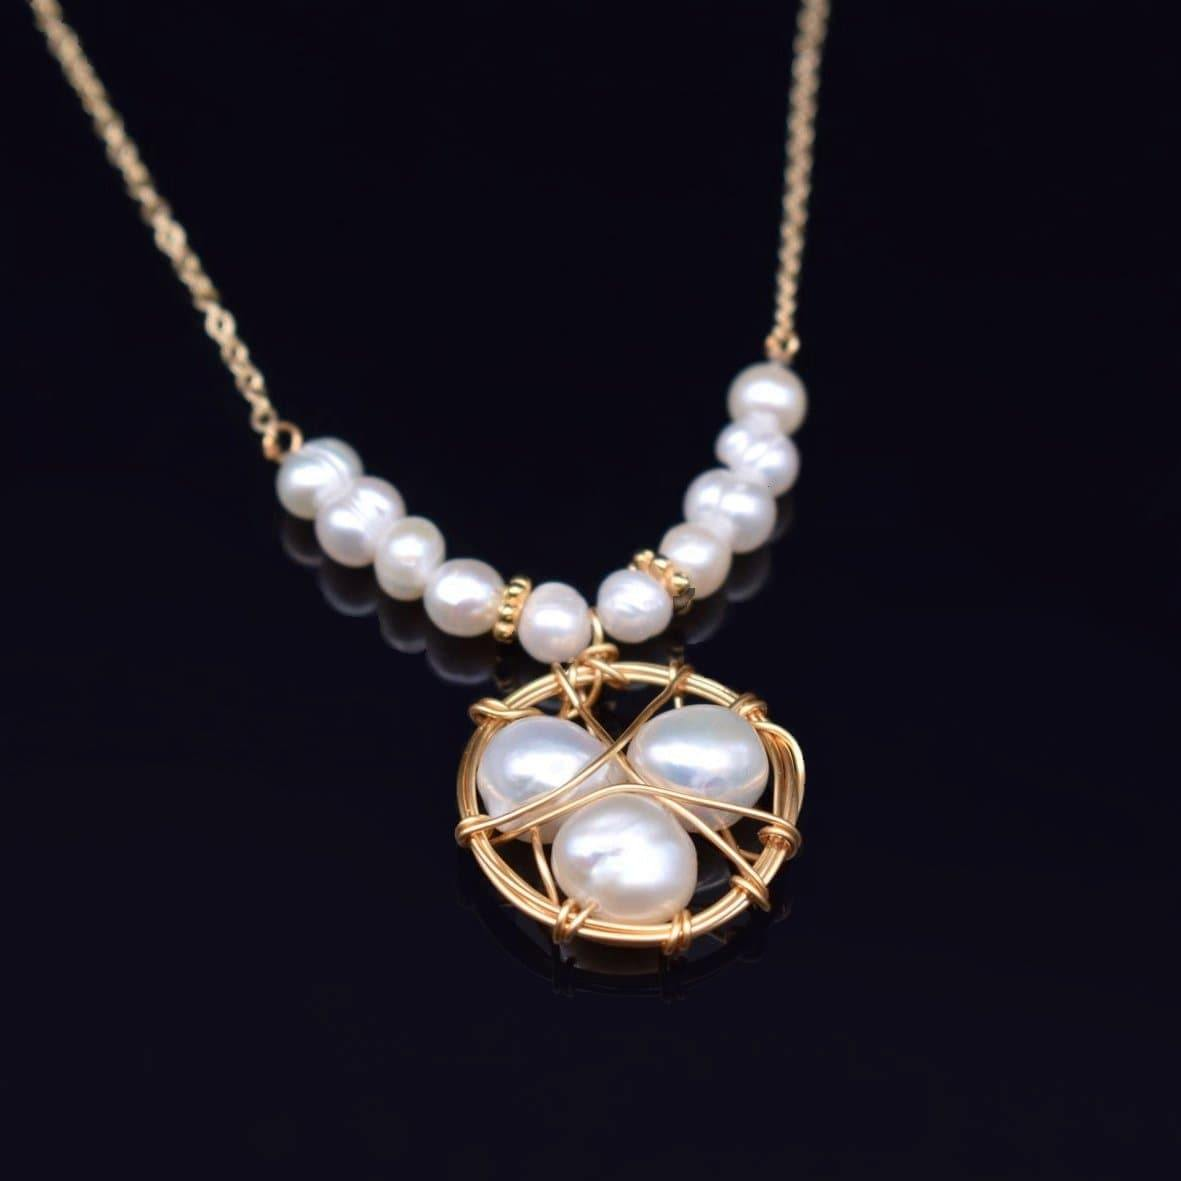 Baroque Pearl Necklace - Lizbeth